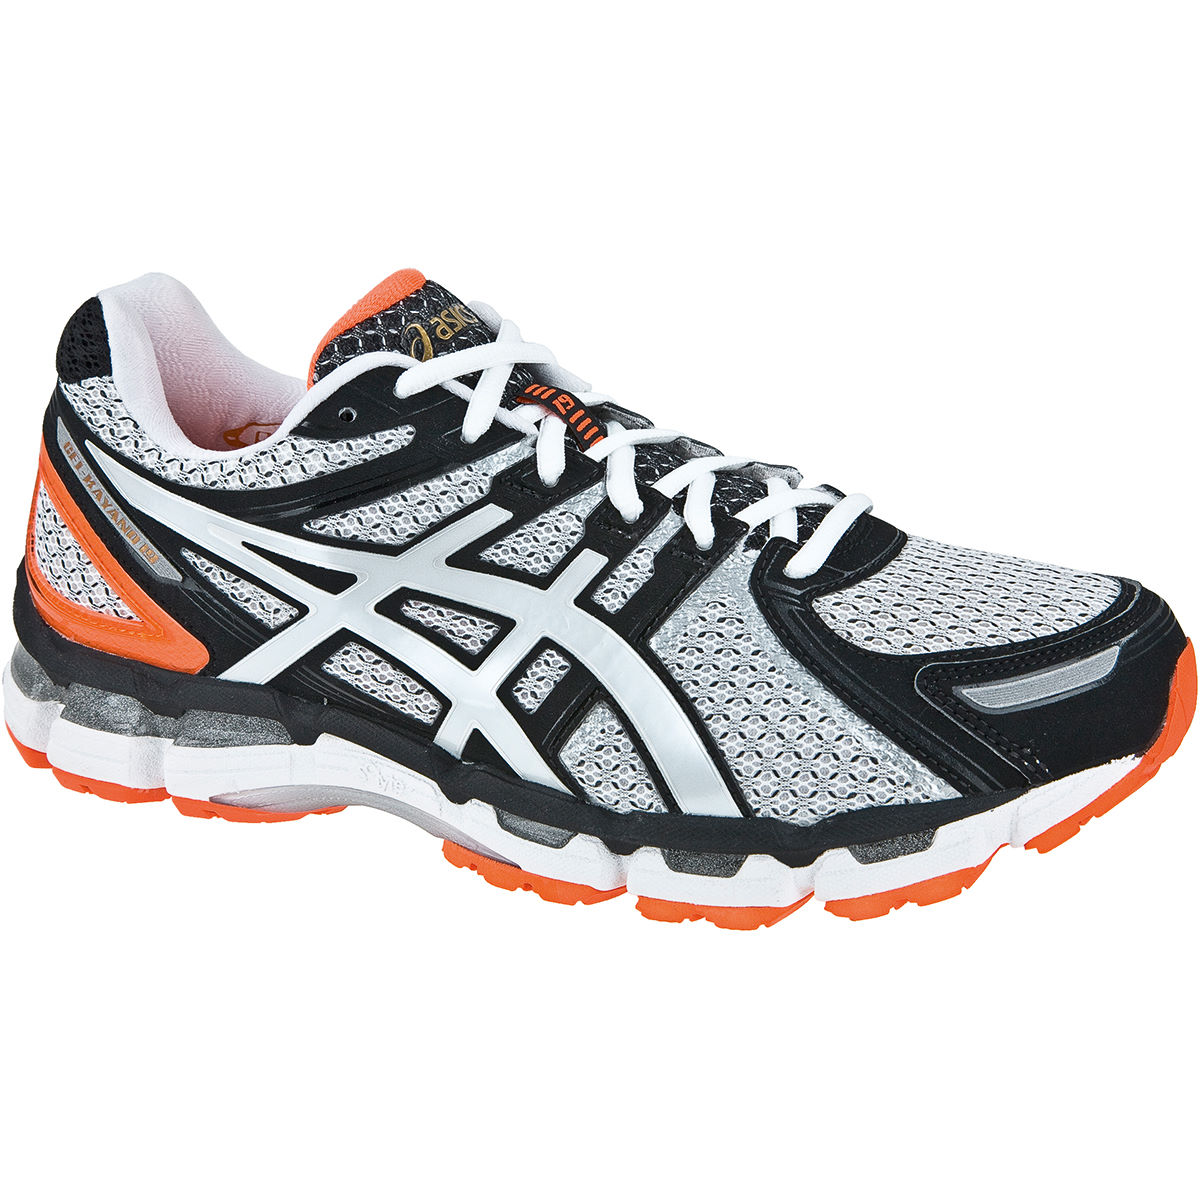 Asics Gel-Kayano 19 Shoes AW13